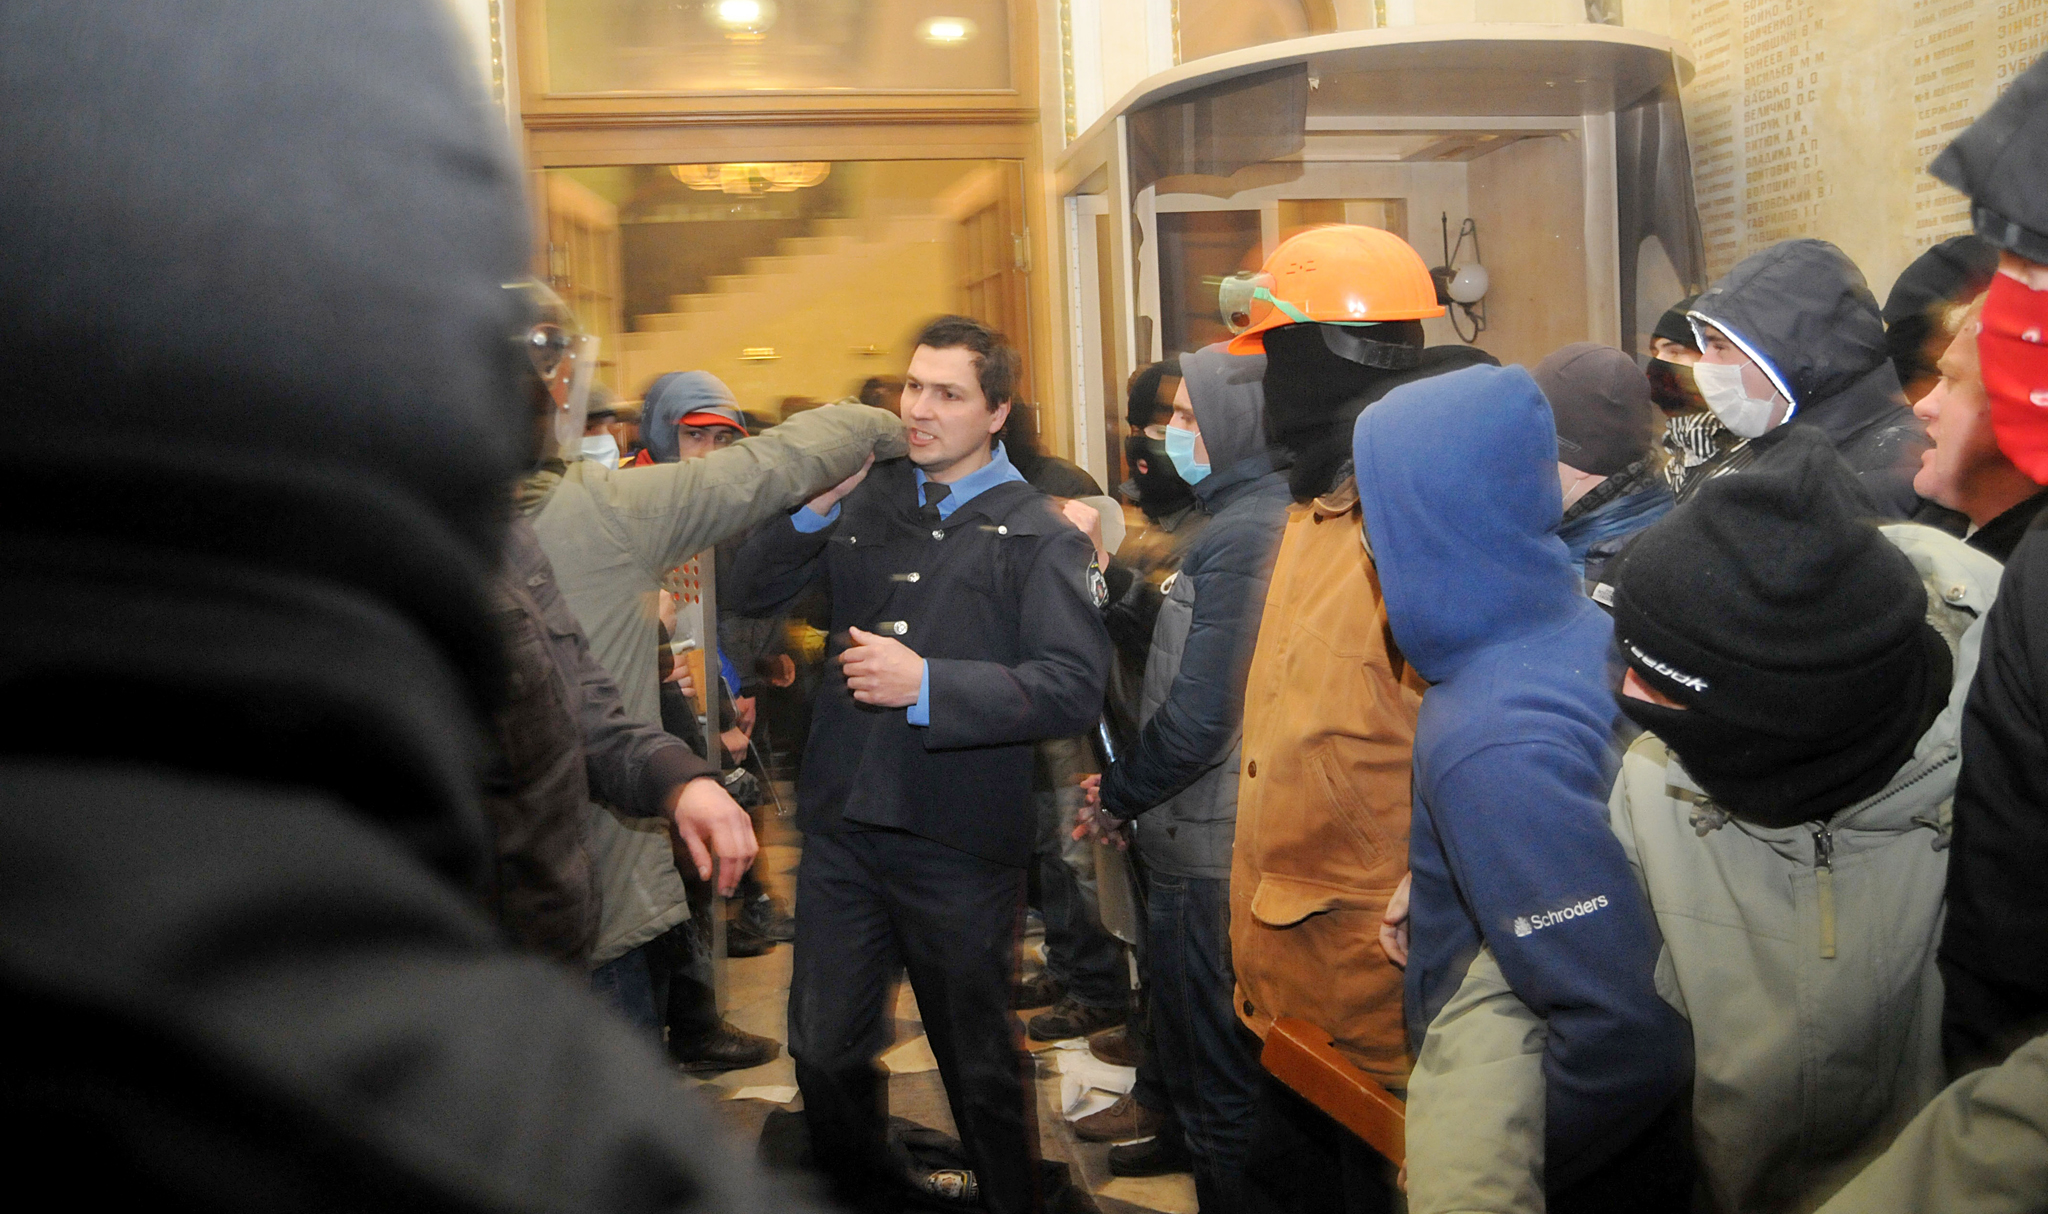 A policeman, center, tries to stop Ukrainian protesters as they seize police headquarters in Lviv, western Ukraine, early Wednesday, Feb. 19, 2014. The violence on Tuesday was the worst in nearly three months of anti-government protests that have paralyzed Ukraine's capital, Kiev, in a struggle over the identity of a nation divided in loyalties between Russia and the West, and the worst in the country's post-Soviet history. (AP Photo/ Pavlo Palamarchuk)